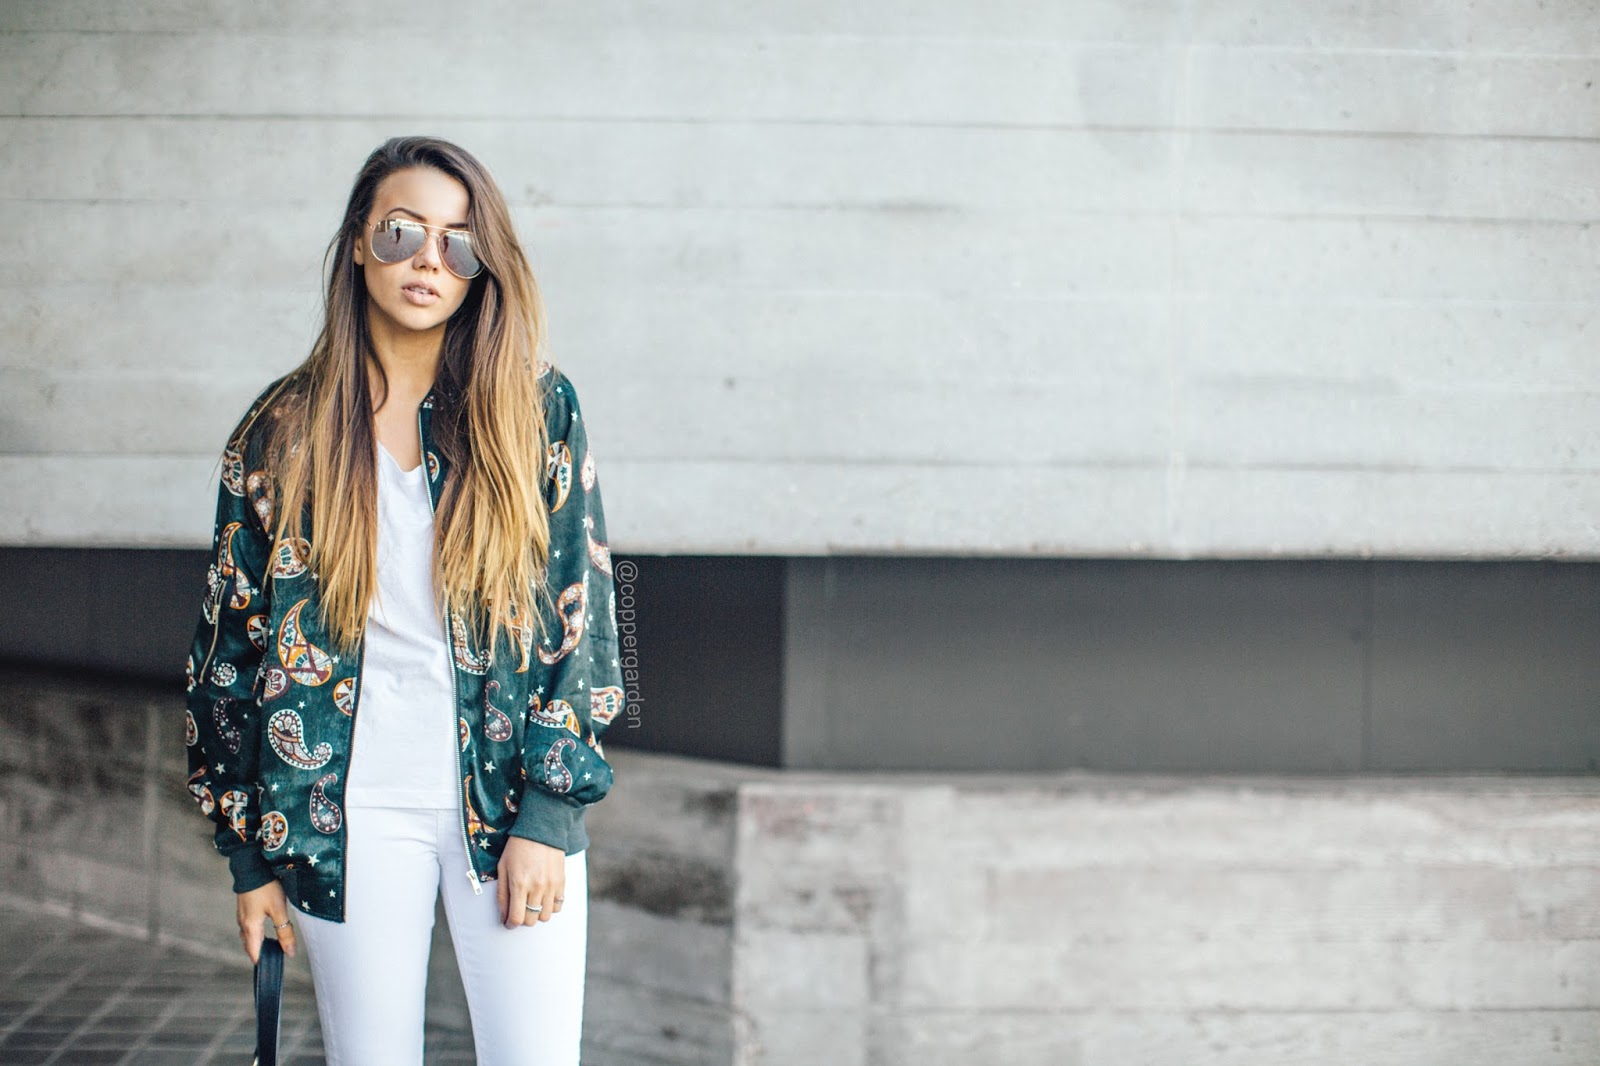 copper garden, fashion and lifestyle blogger, public desire lace up suede heels, paisley printed bomber jacket, festival style, summer 2016 outfit ideas, all white outfits,